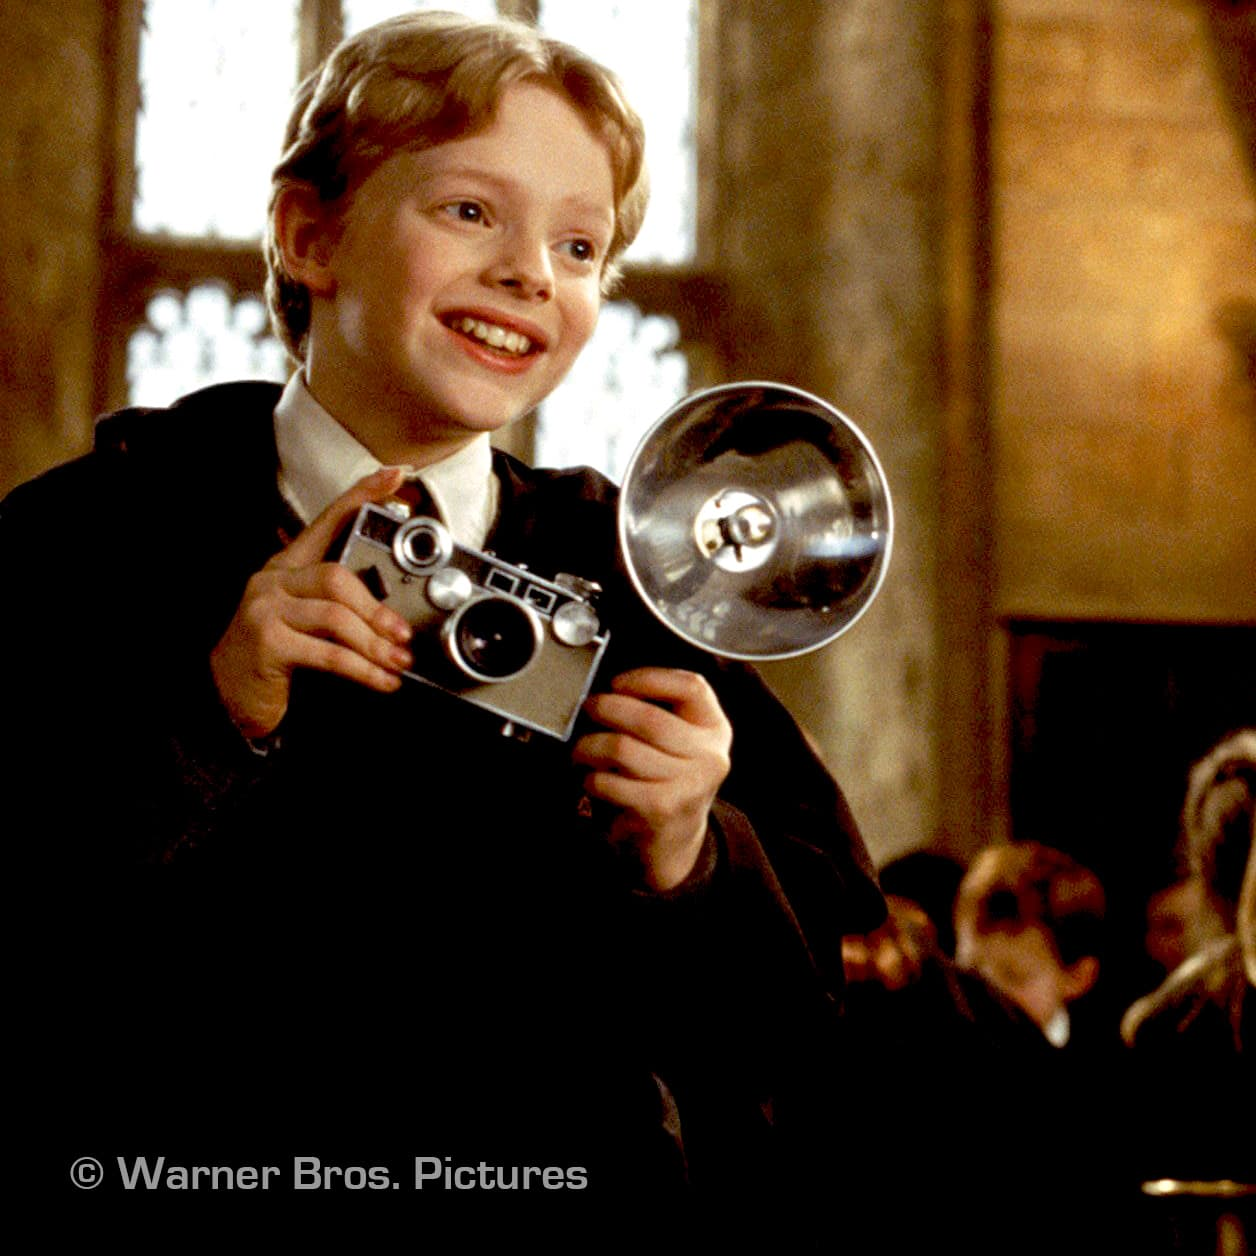 Picture of Colin Creevey from Harry Potter with Argus camera and flash. Copyright Warner Bros.